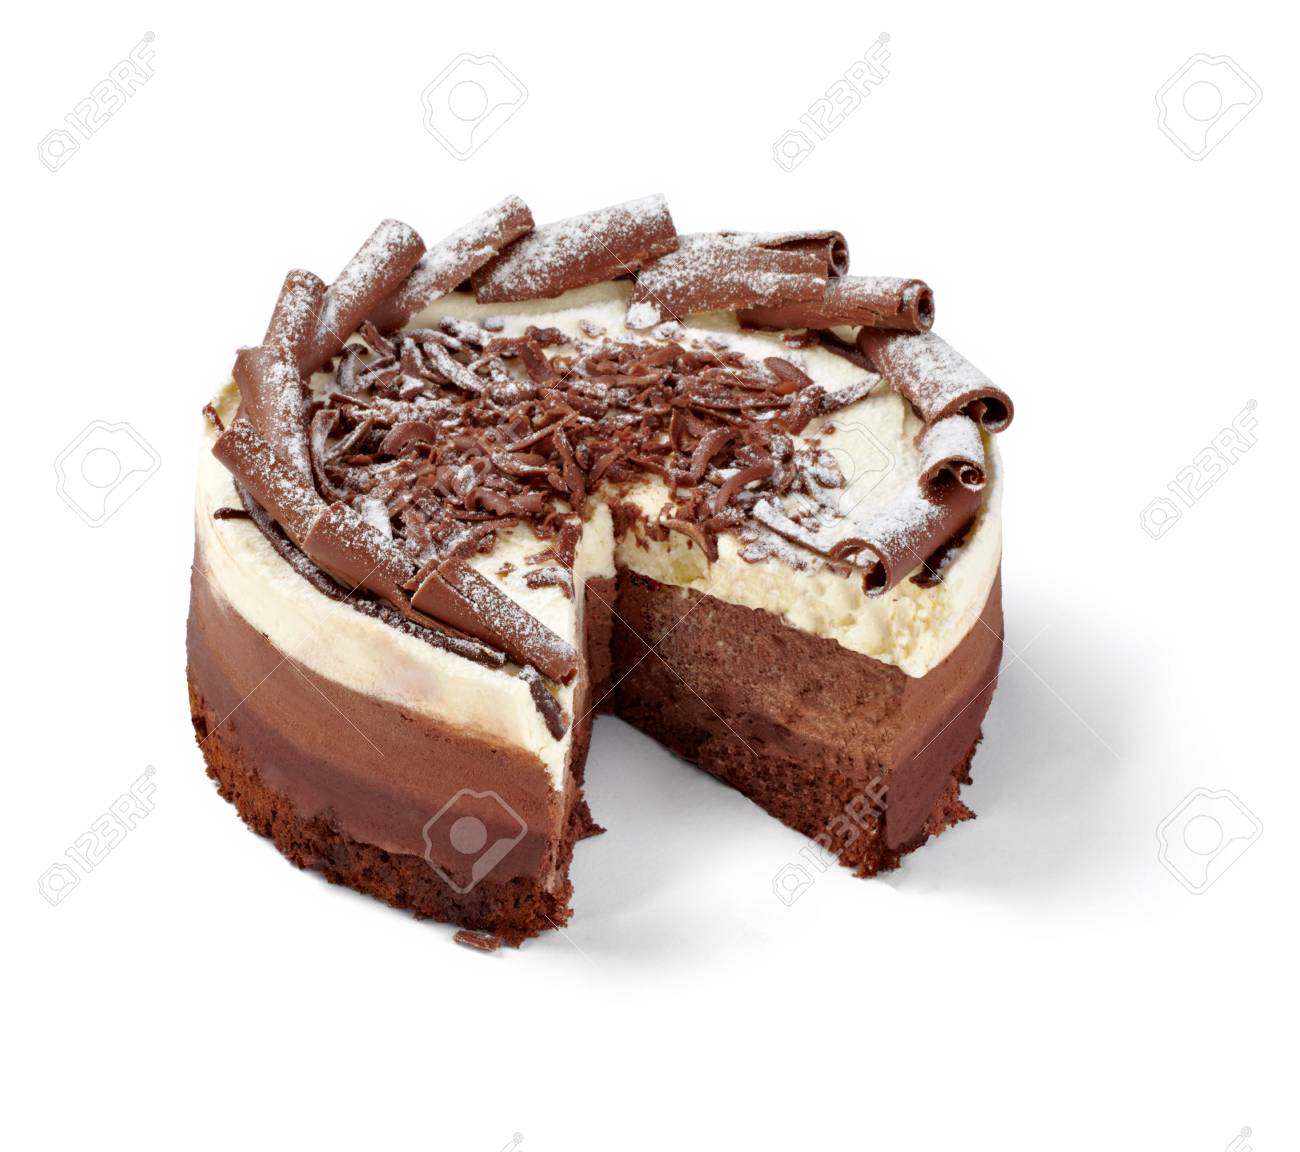 close up of a chocolate cream cake on white plate Stock Photo - 13553876